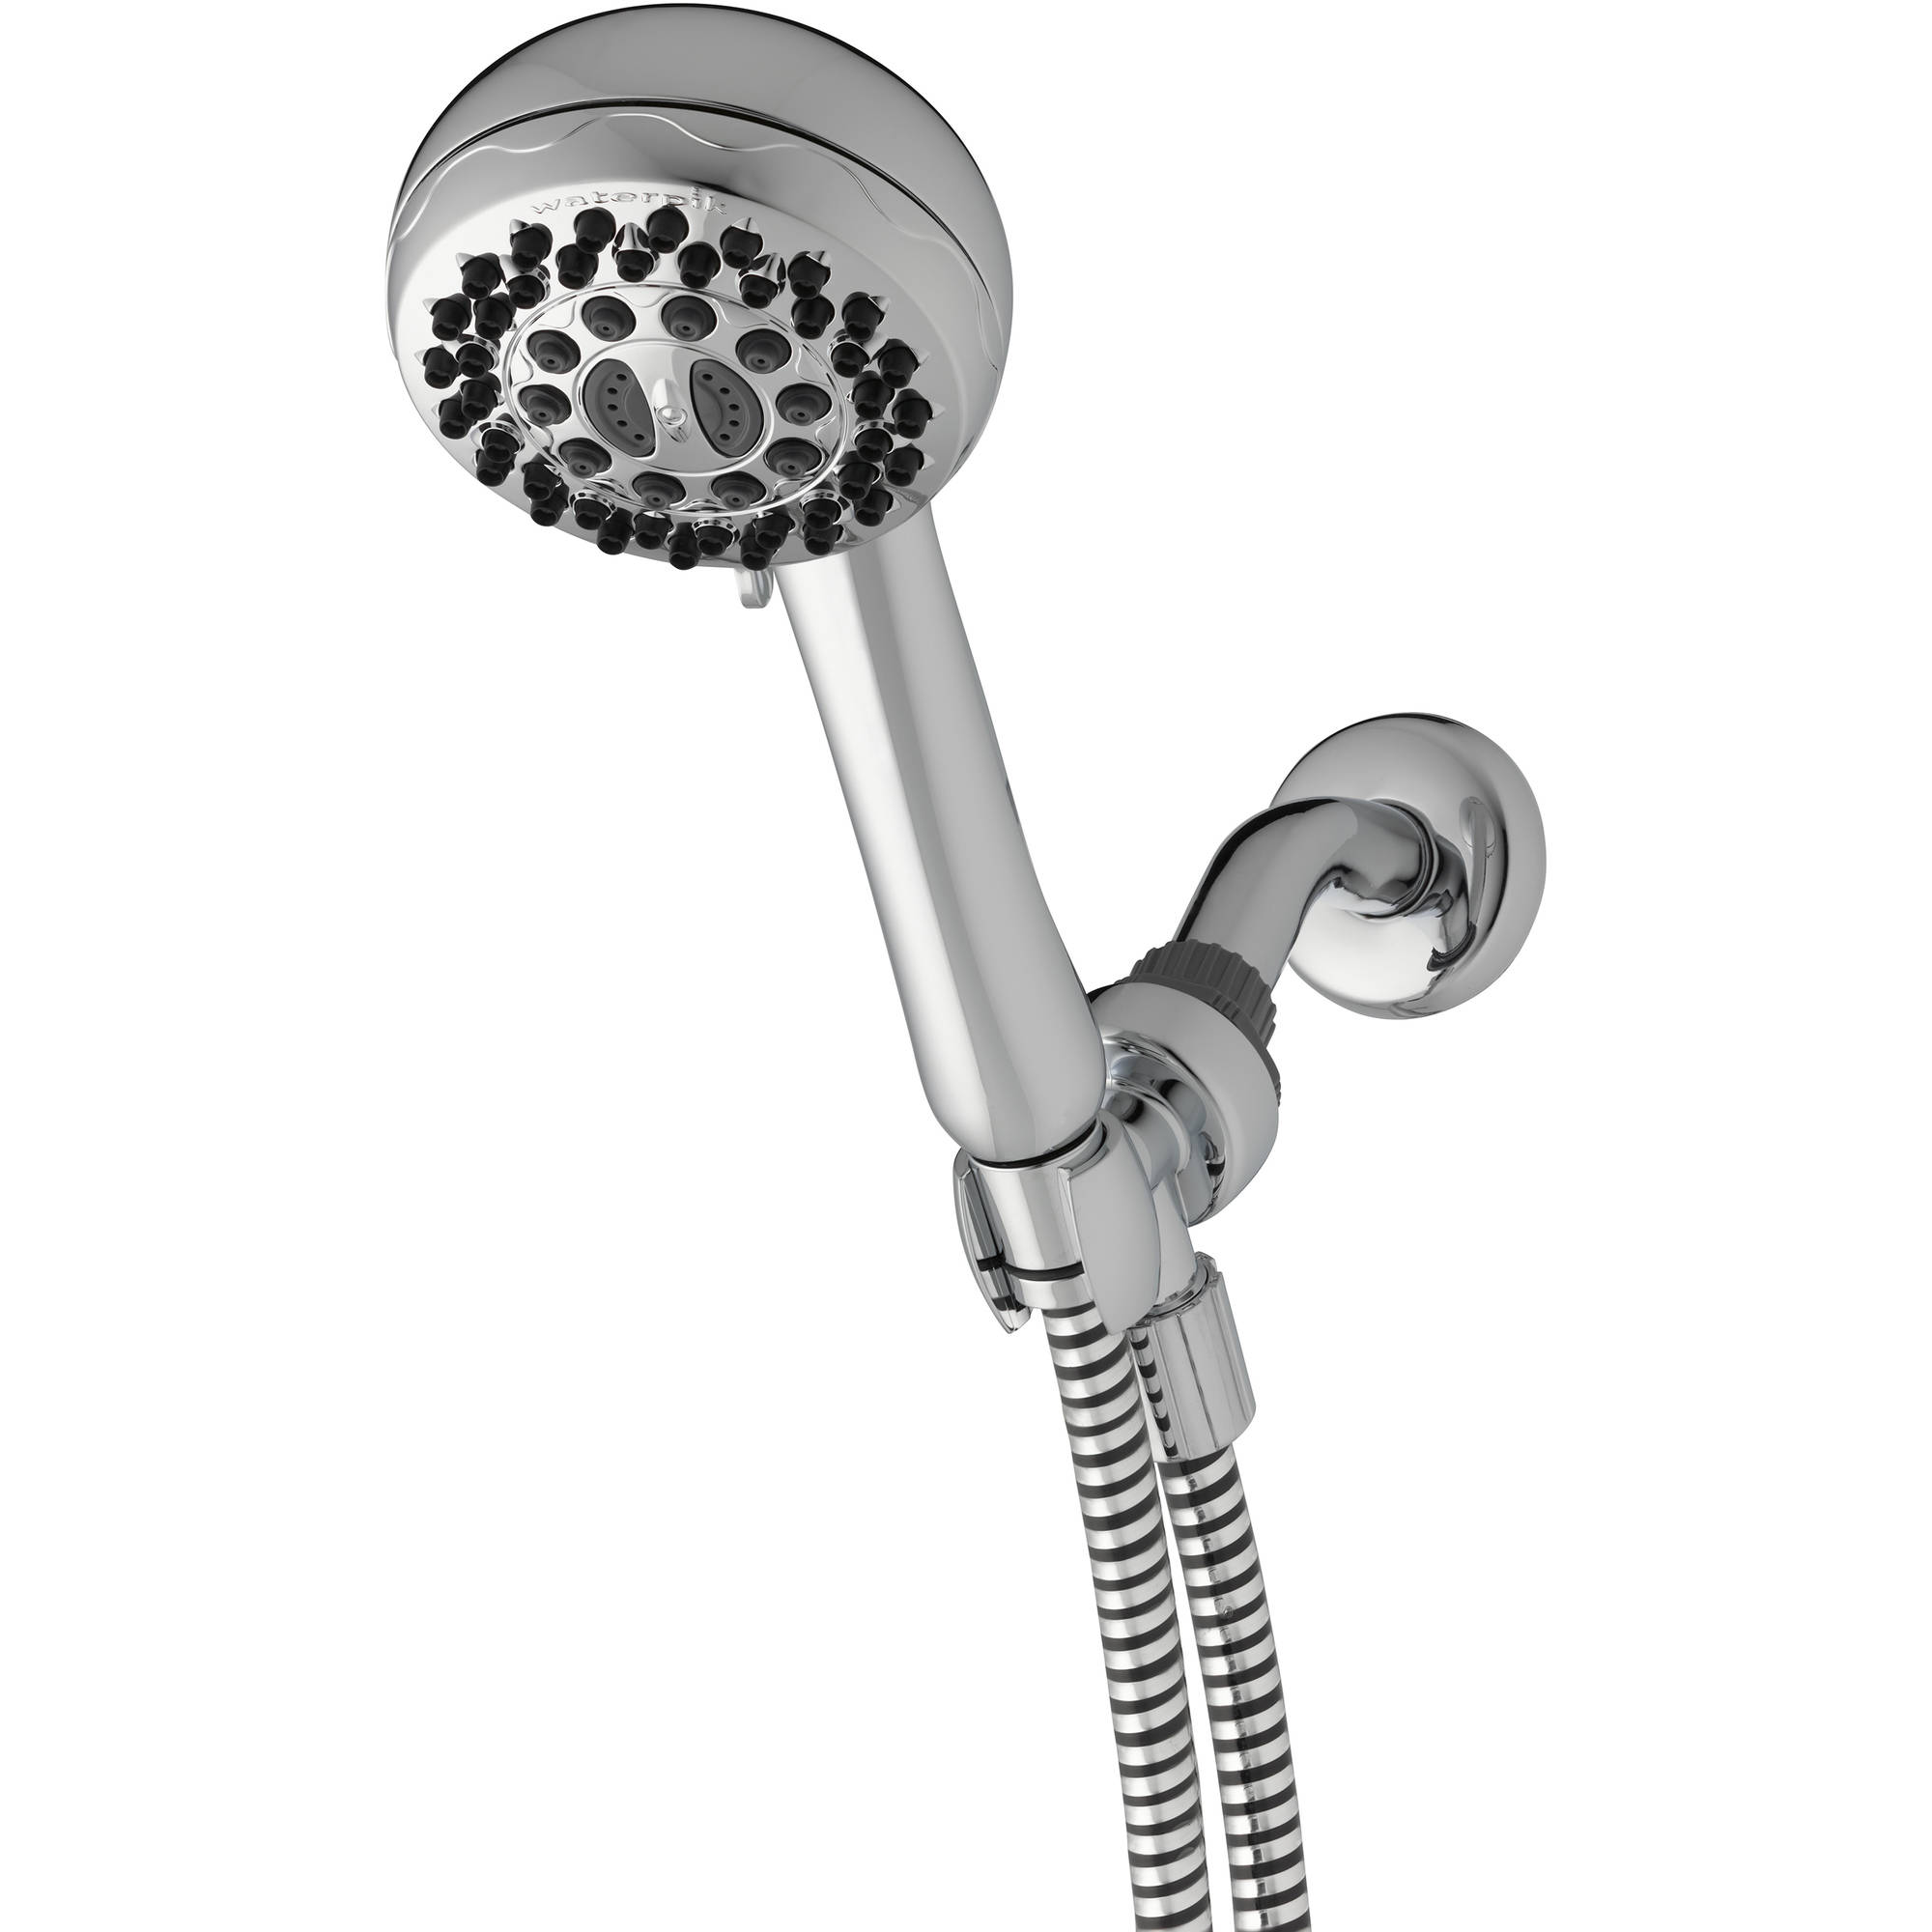 Waterpik PowerPulse 7-Mode Hand-Held Shower Head, Chrome XAC-763